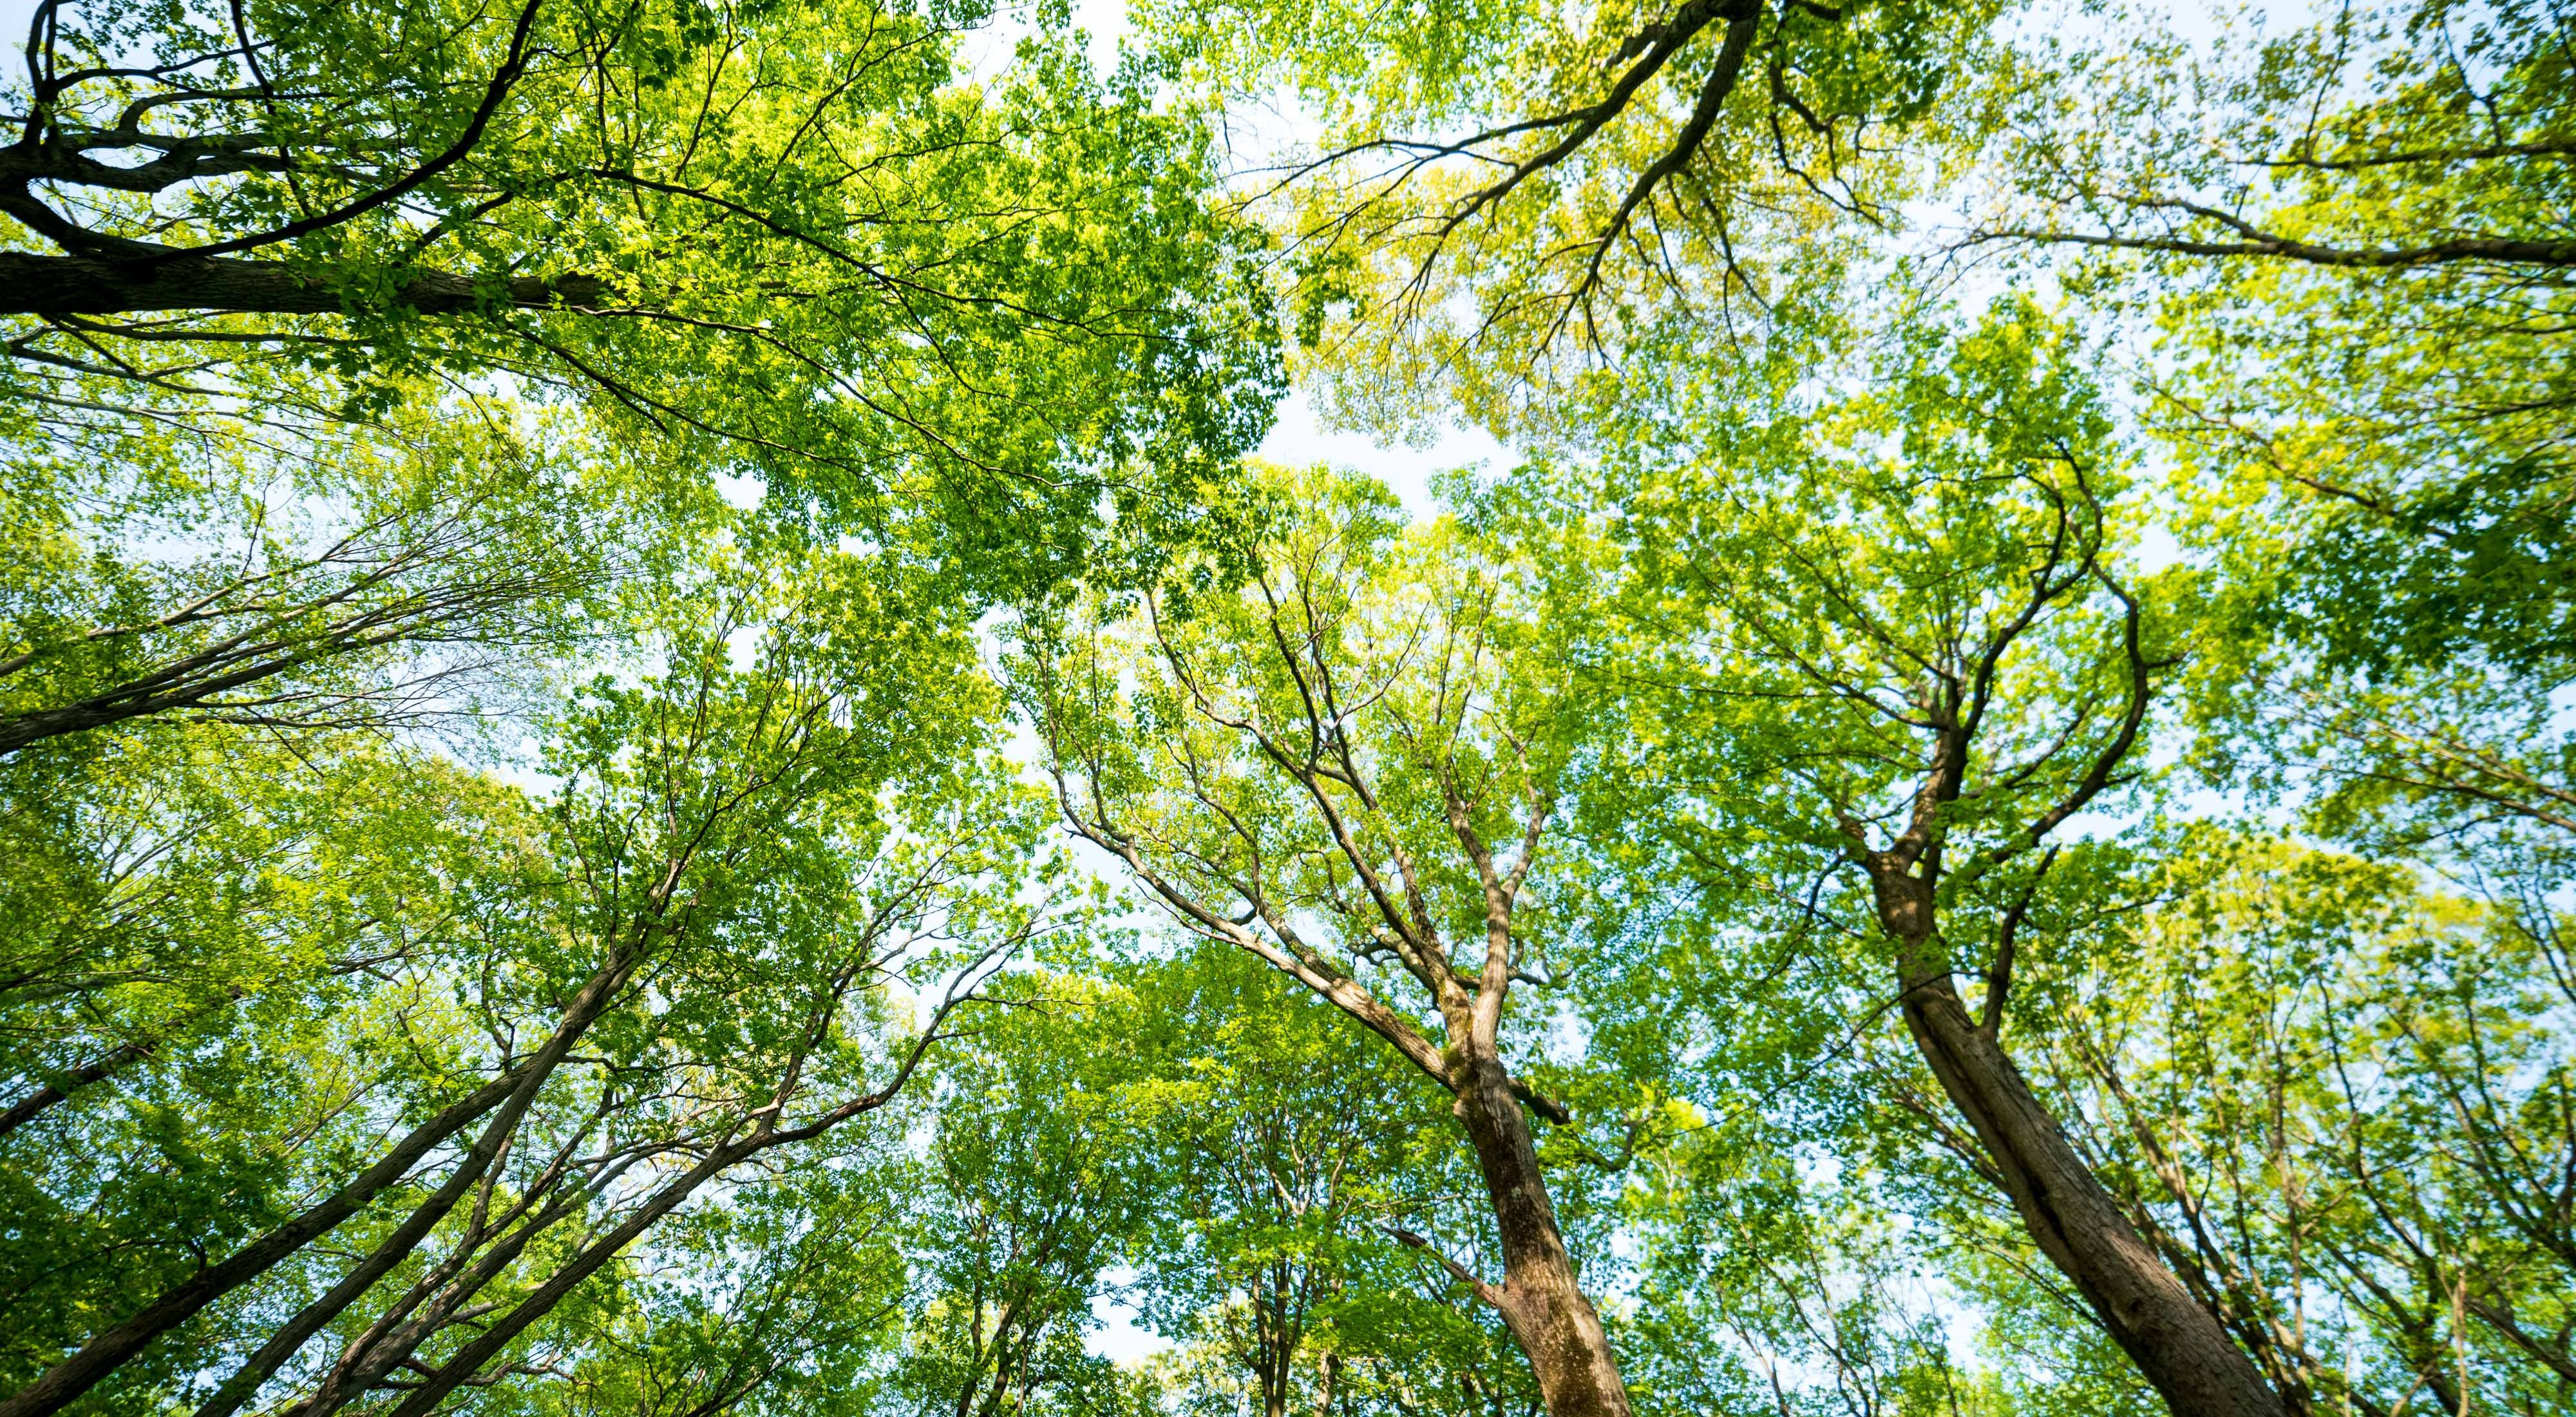 Looking up to a canopy of green, densely populated trees.